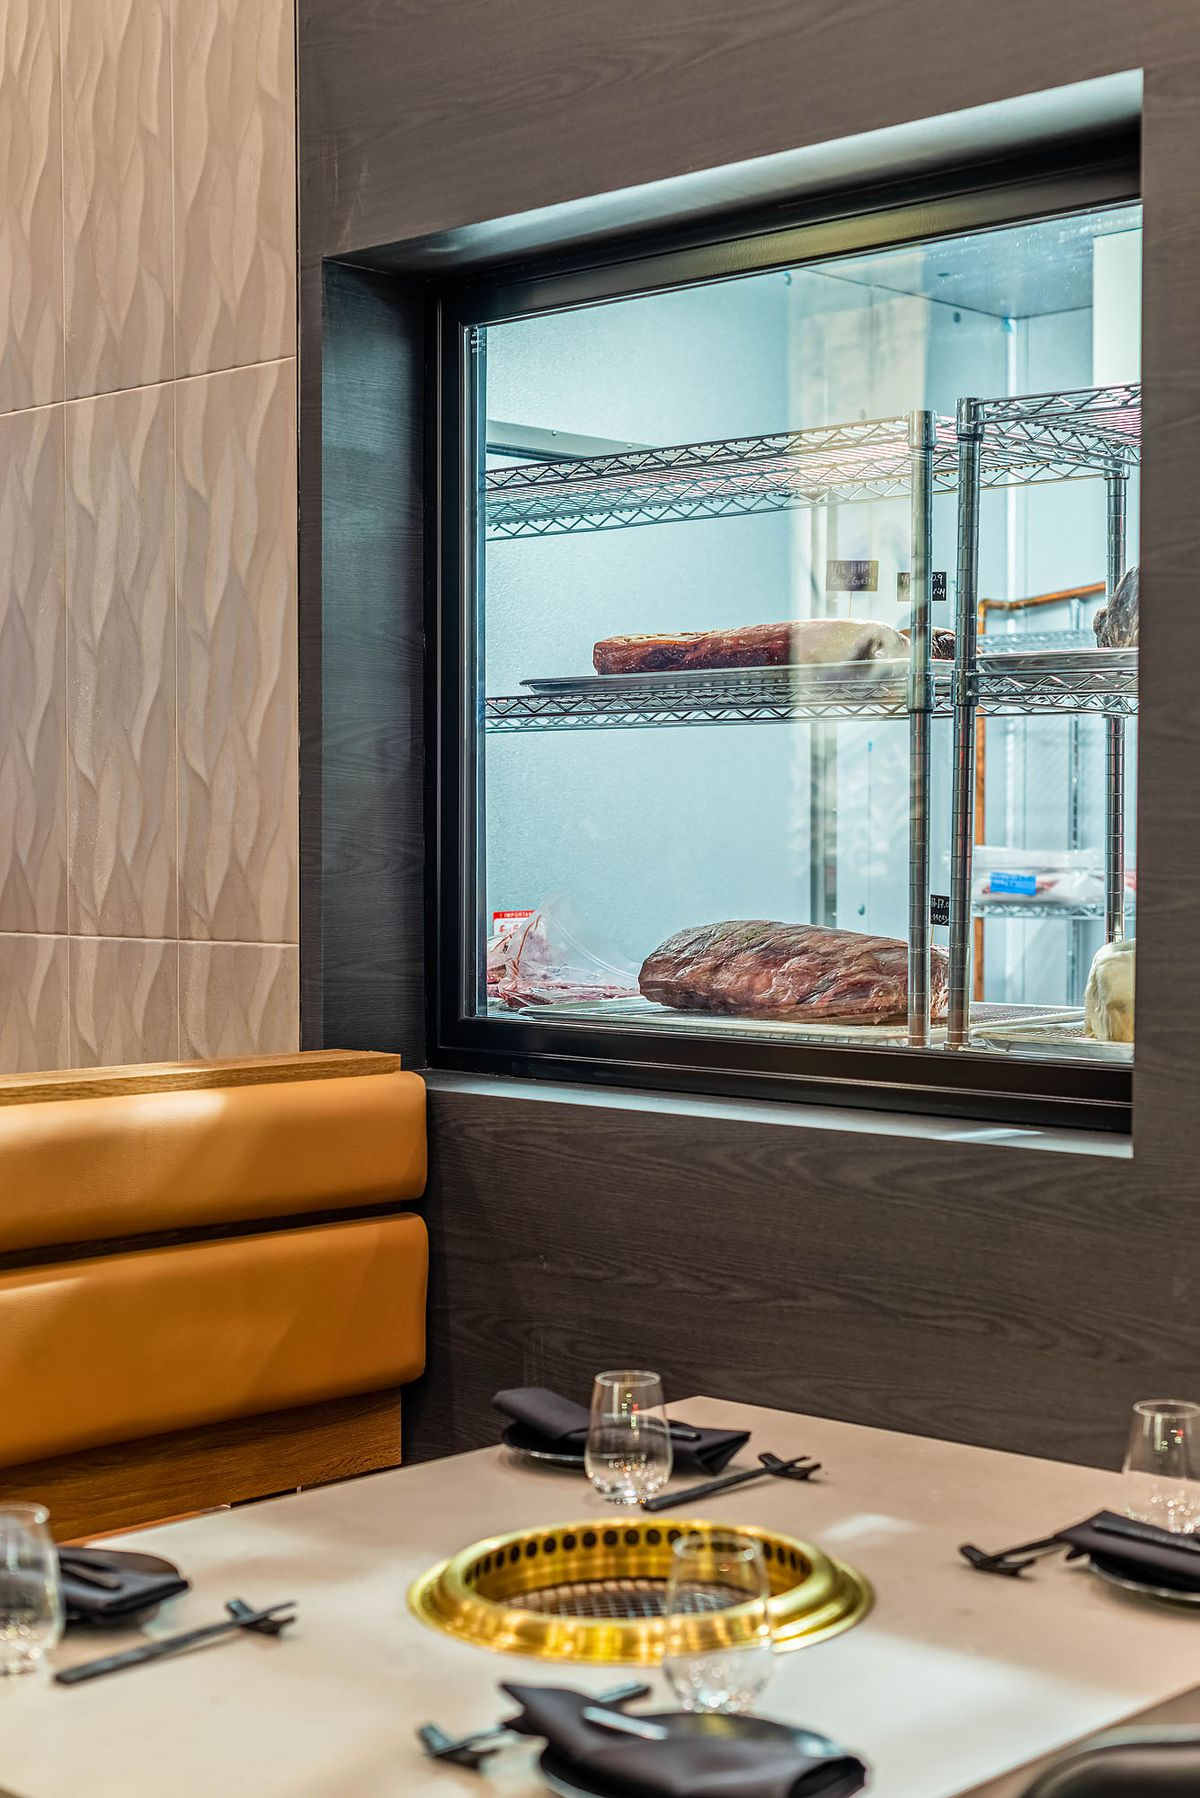 Dinner table setup at ABSteak with window into dry-aging room with beef.